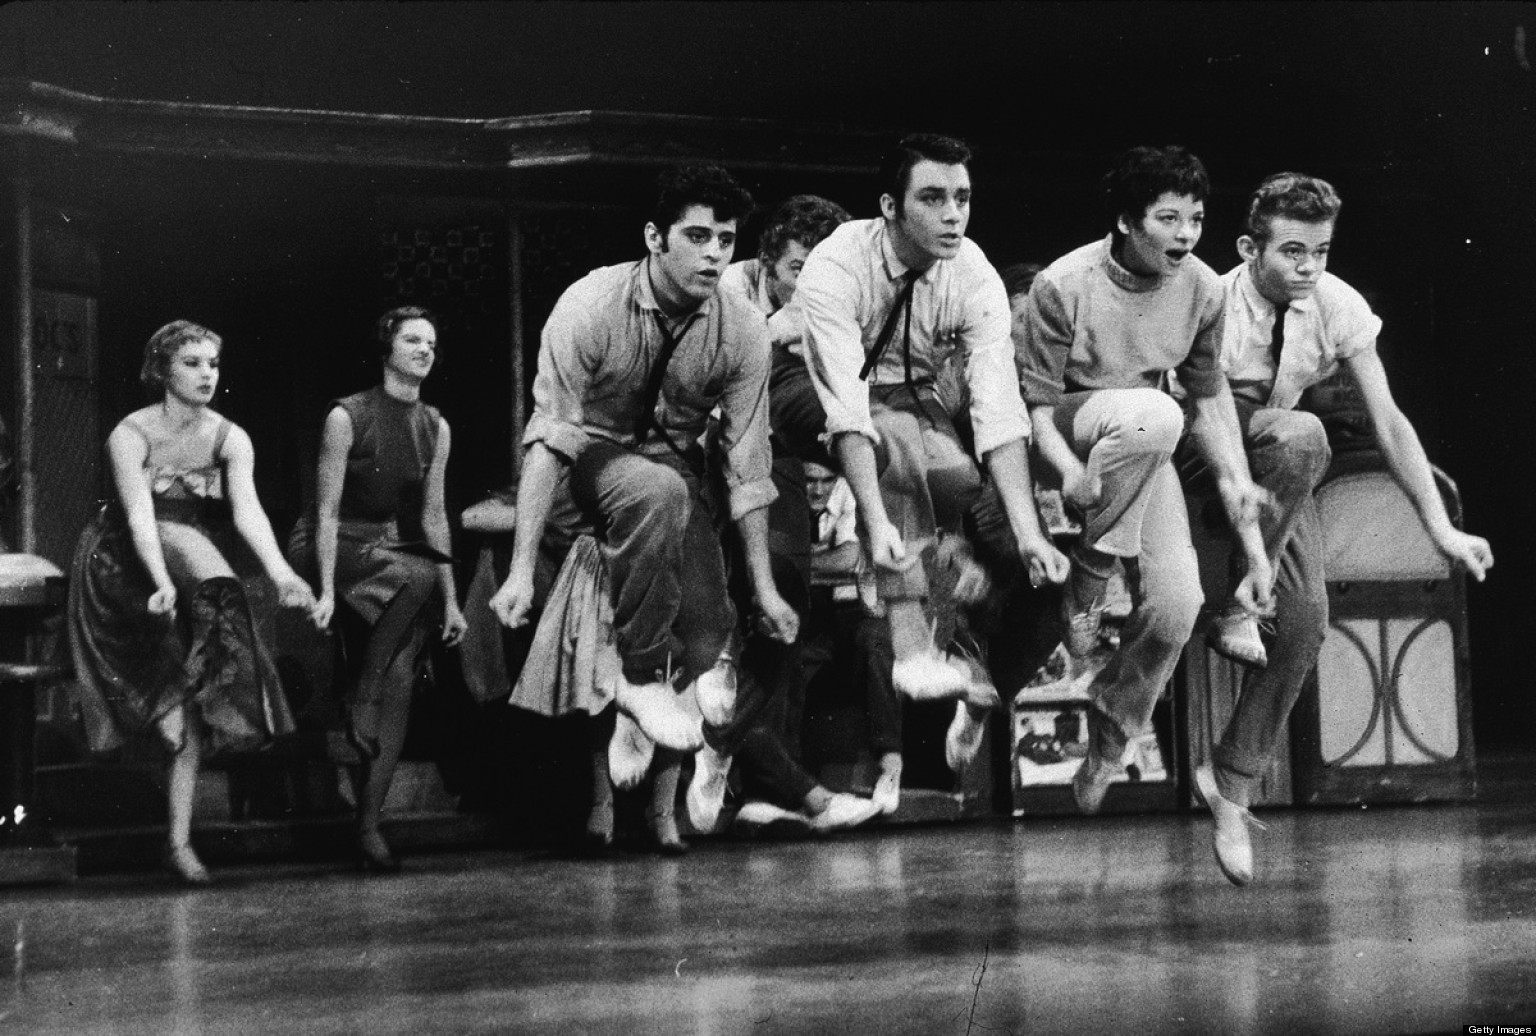 a comparison of romeo and juliet and the premiere of west side story on broadway in 1957 Romeo and juliet and west side story what are the differences and similarities b/n tony and romeo could you specify what both characters were doing at the same time  example of similarities .